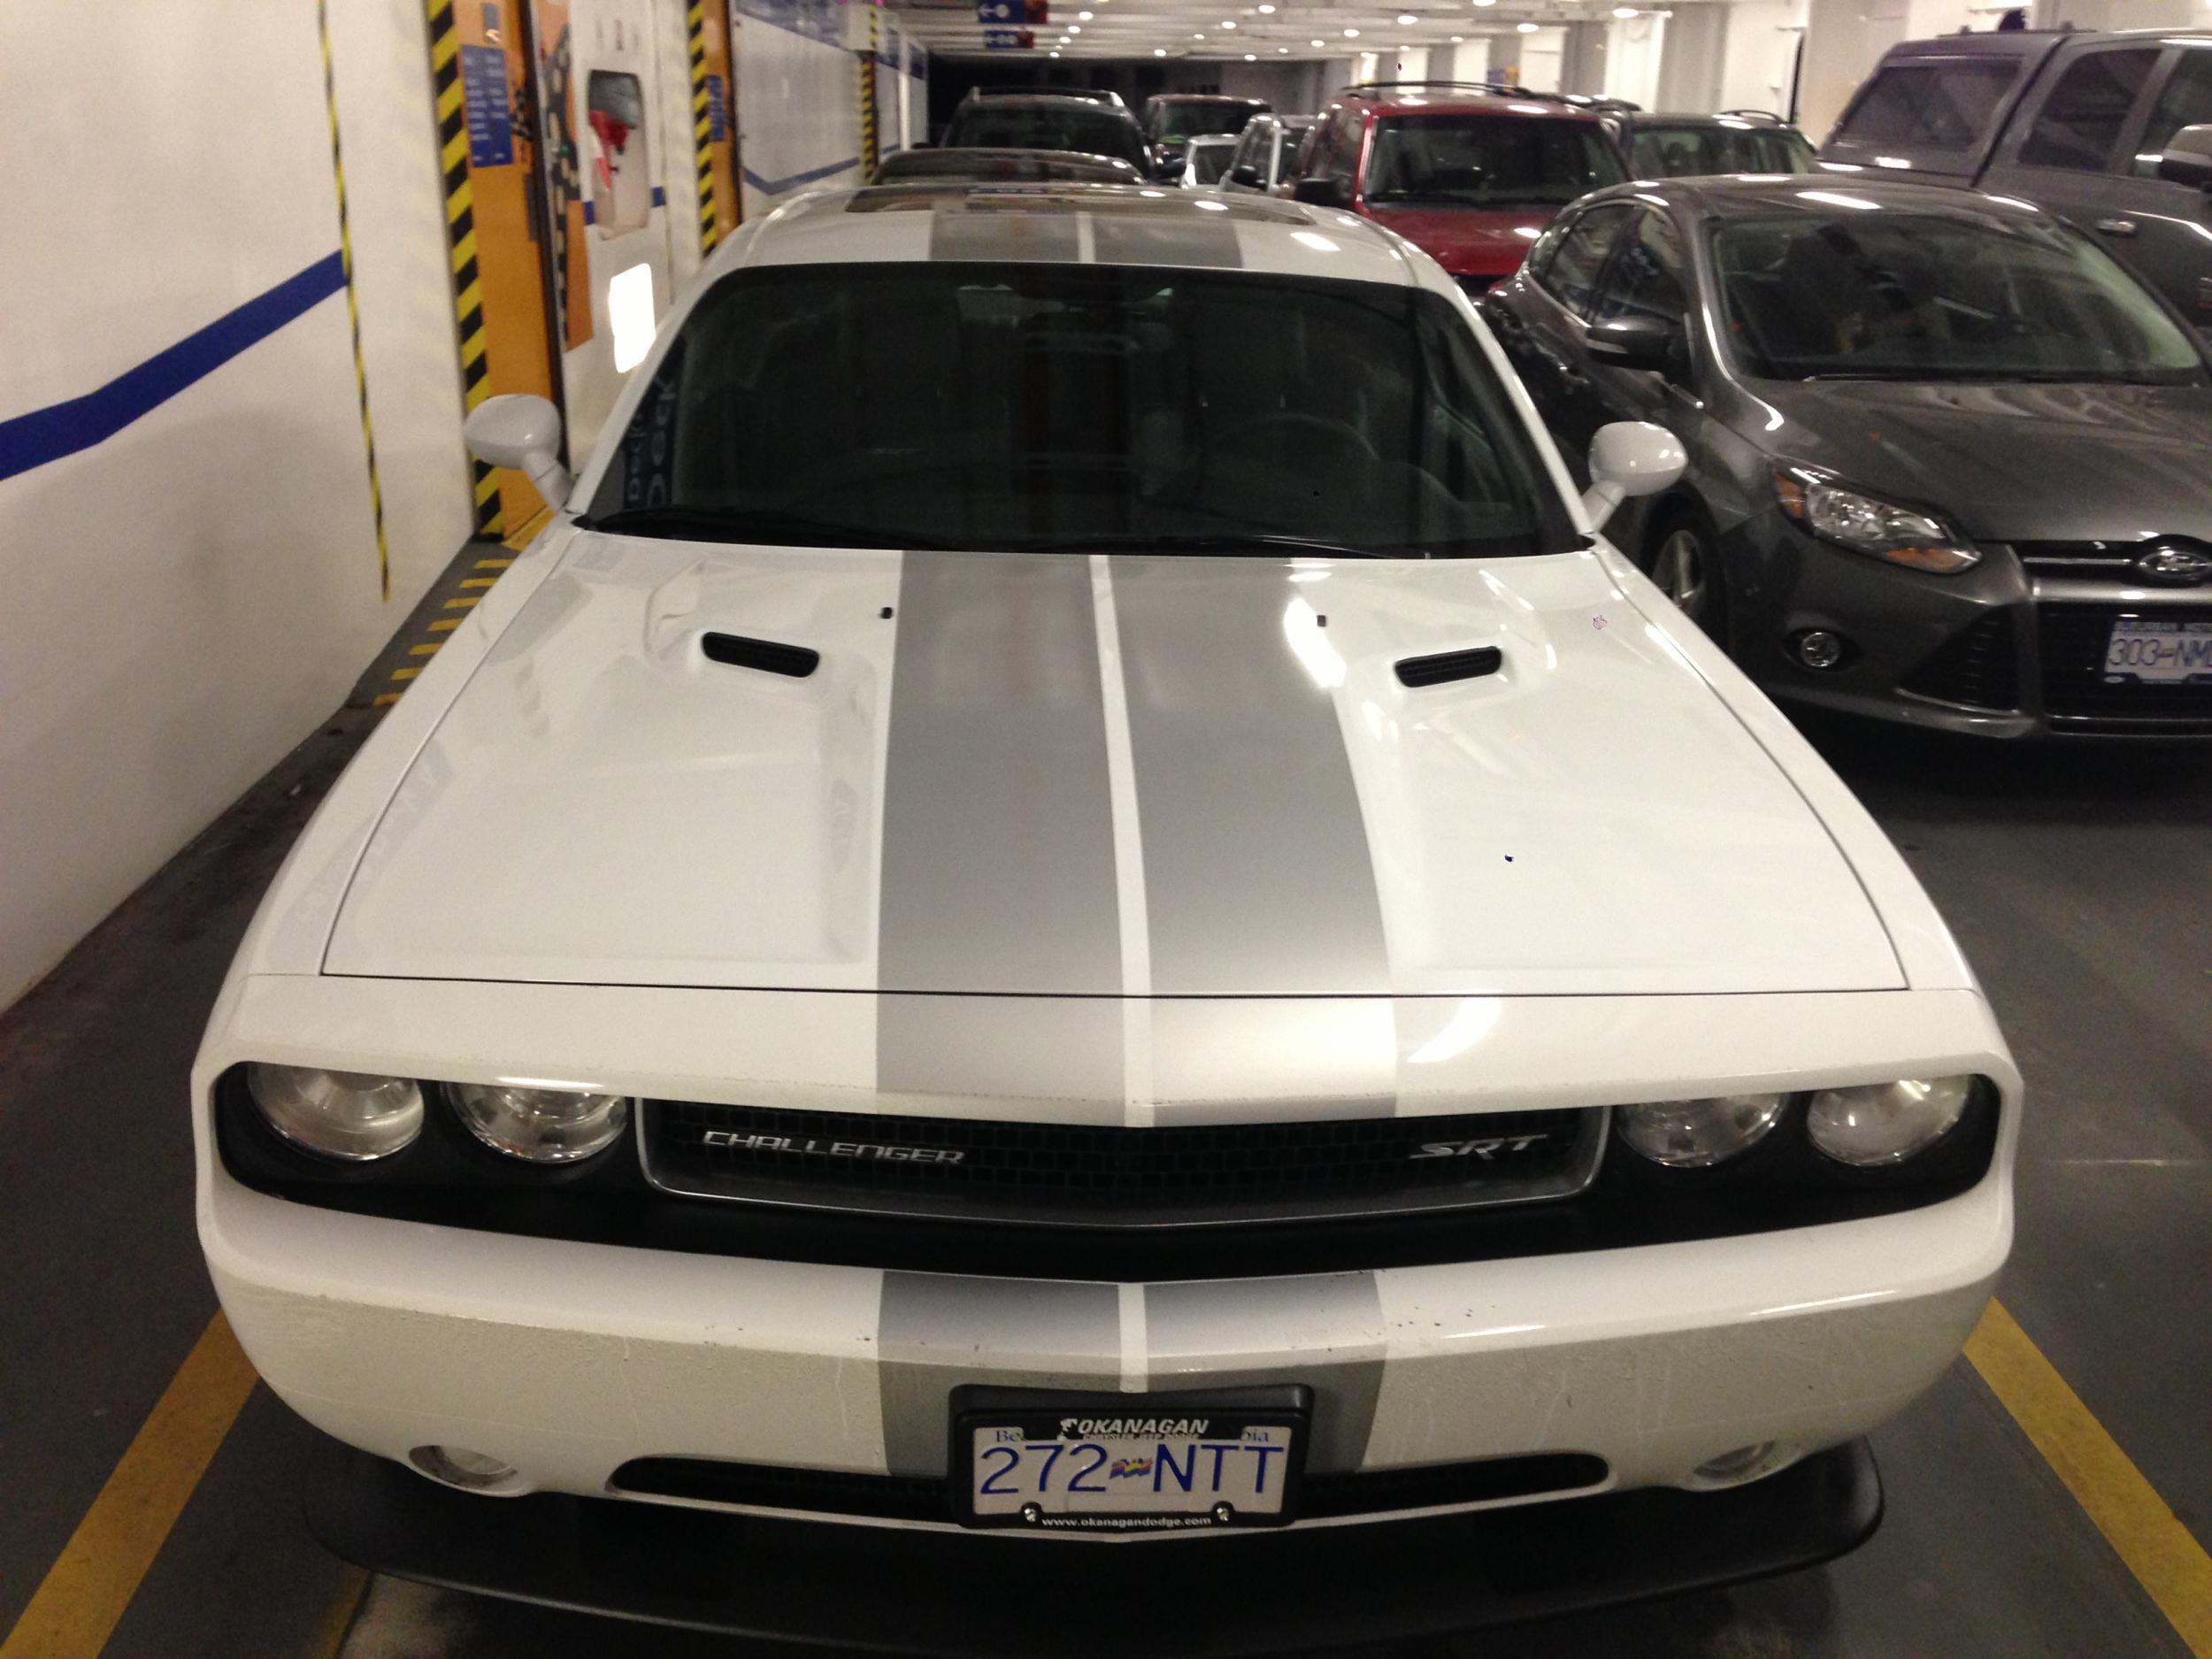 I want to see pics of white Challengers!-img_0343.jpg